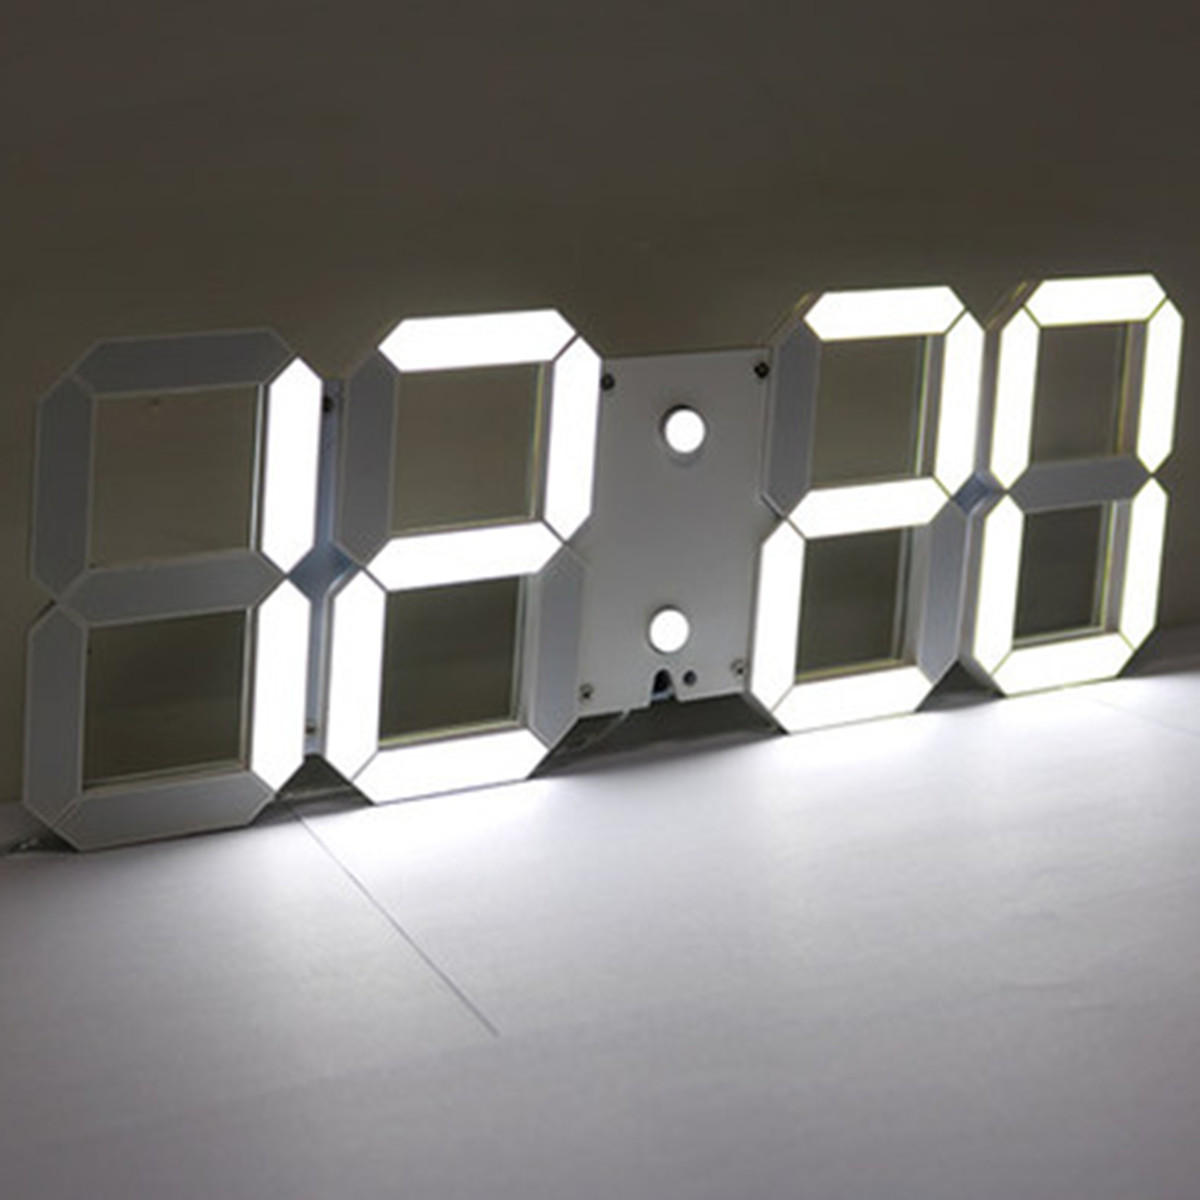 Led Wanduhren Grosse Digitale Wanduhr